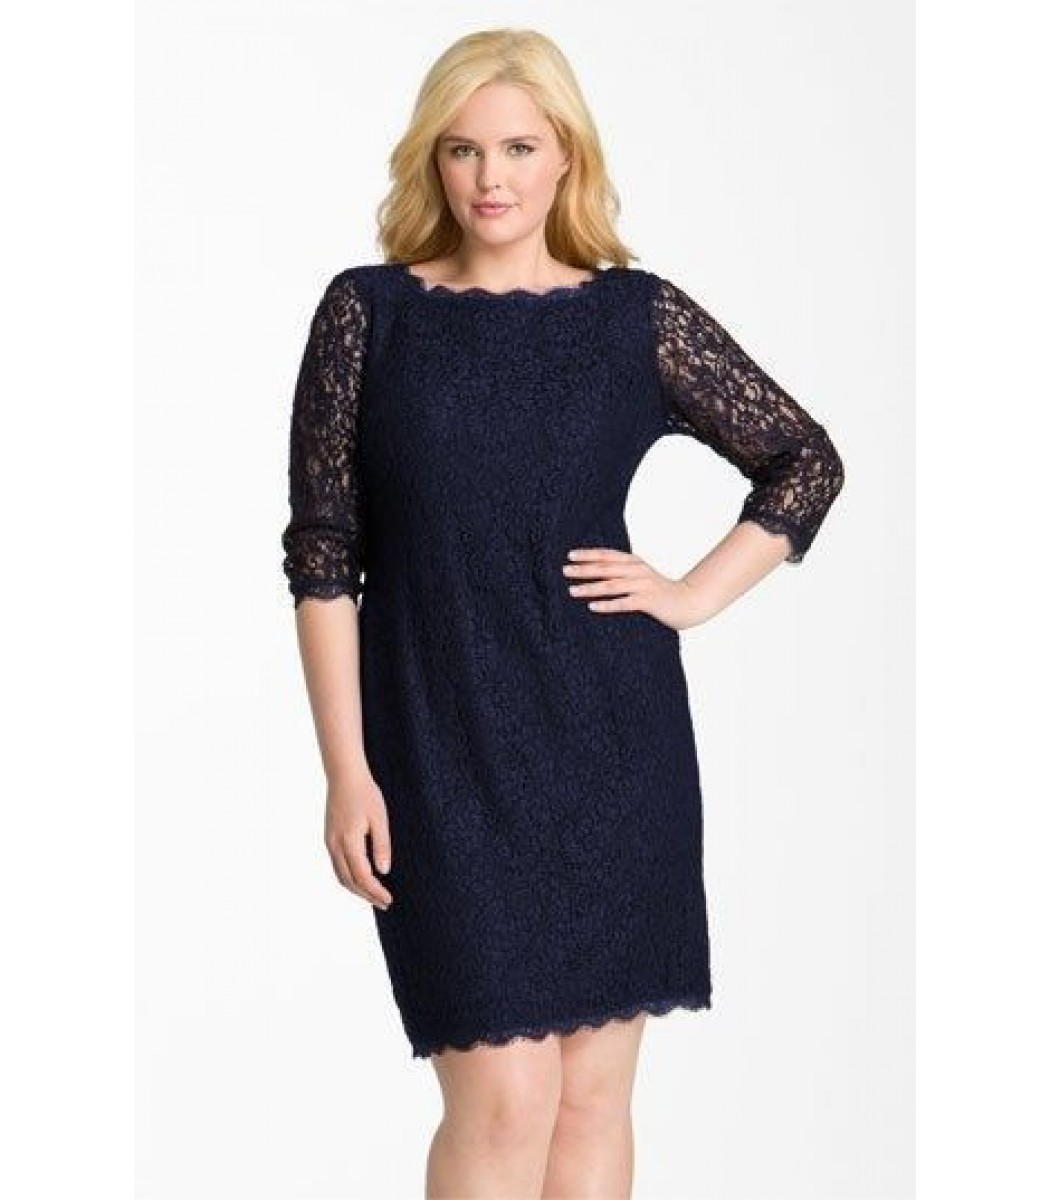 ADRIANNA PAPELL 041864781 NAVY Blue Lace Cocktail Dress Plus Size ...